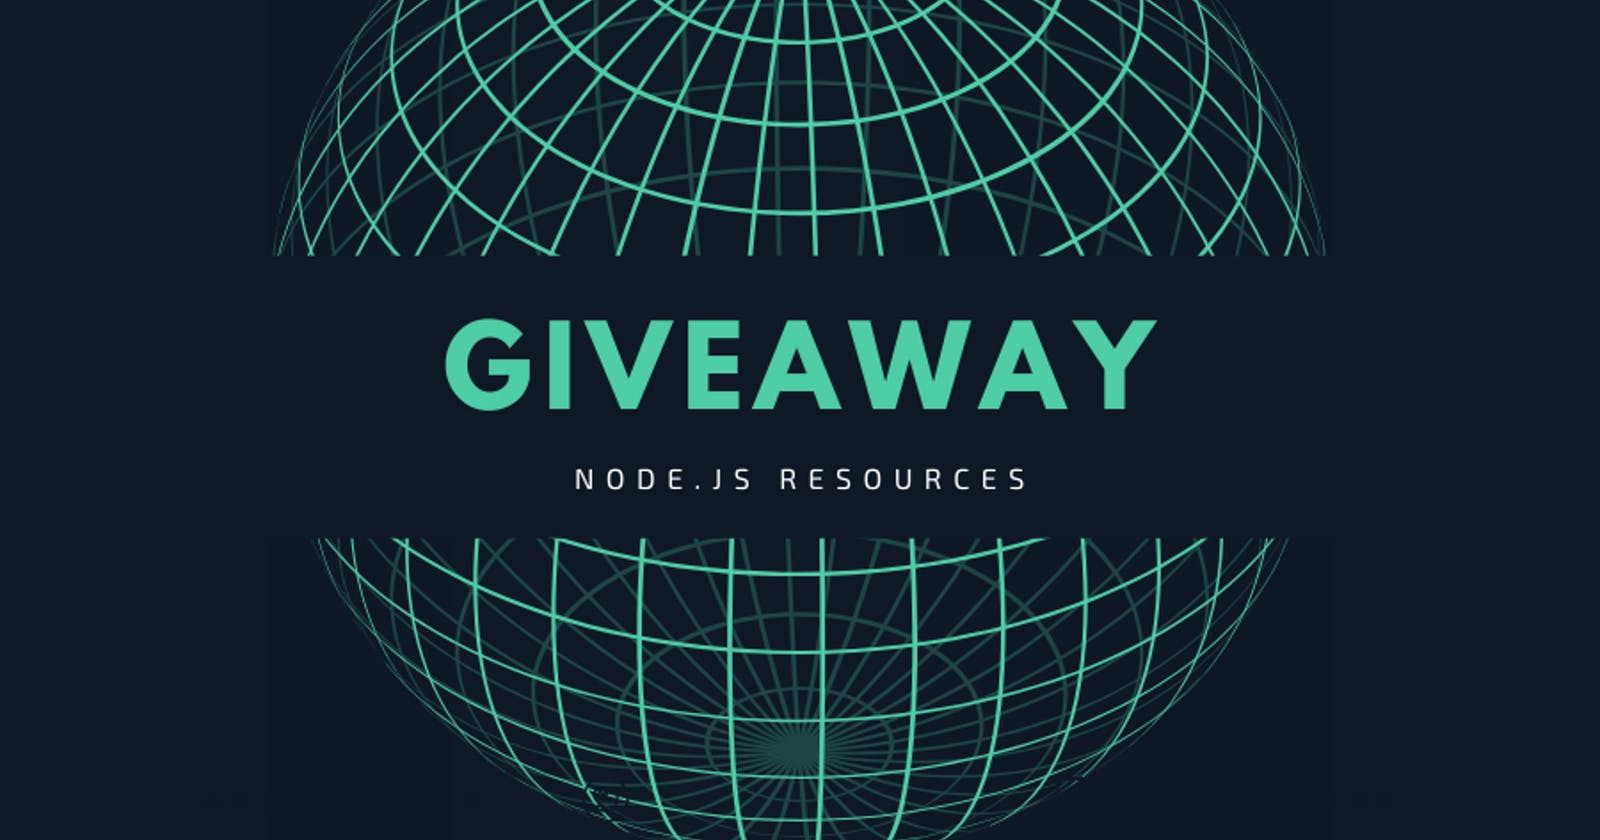 Free and Paid Node.js  Resources and a Giveaway